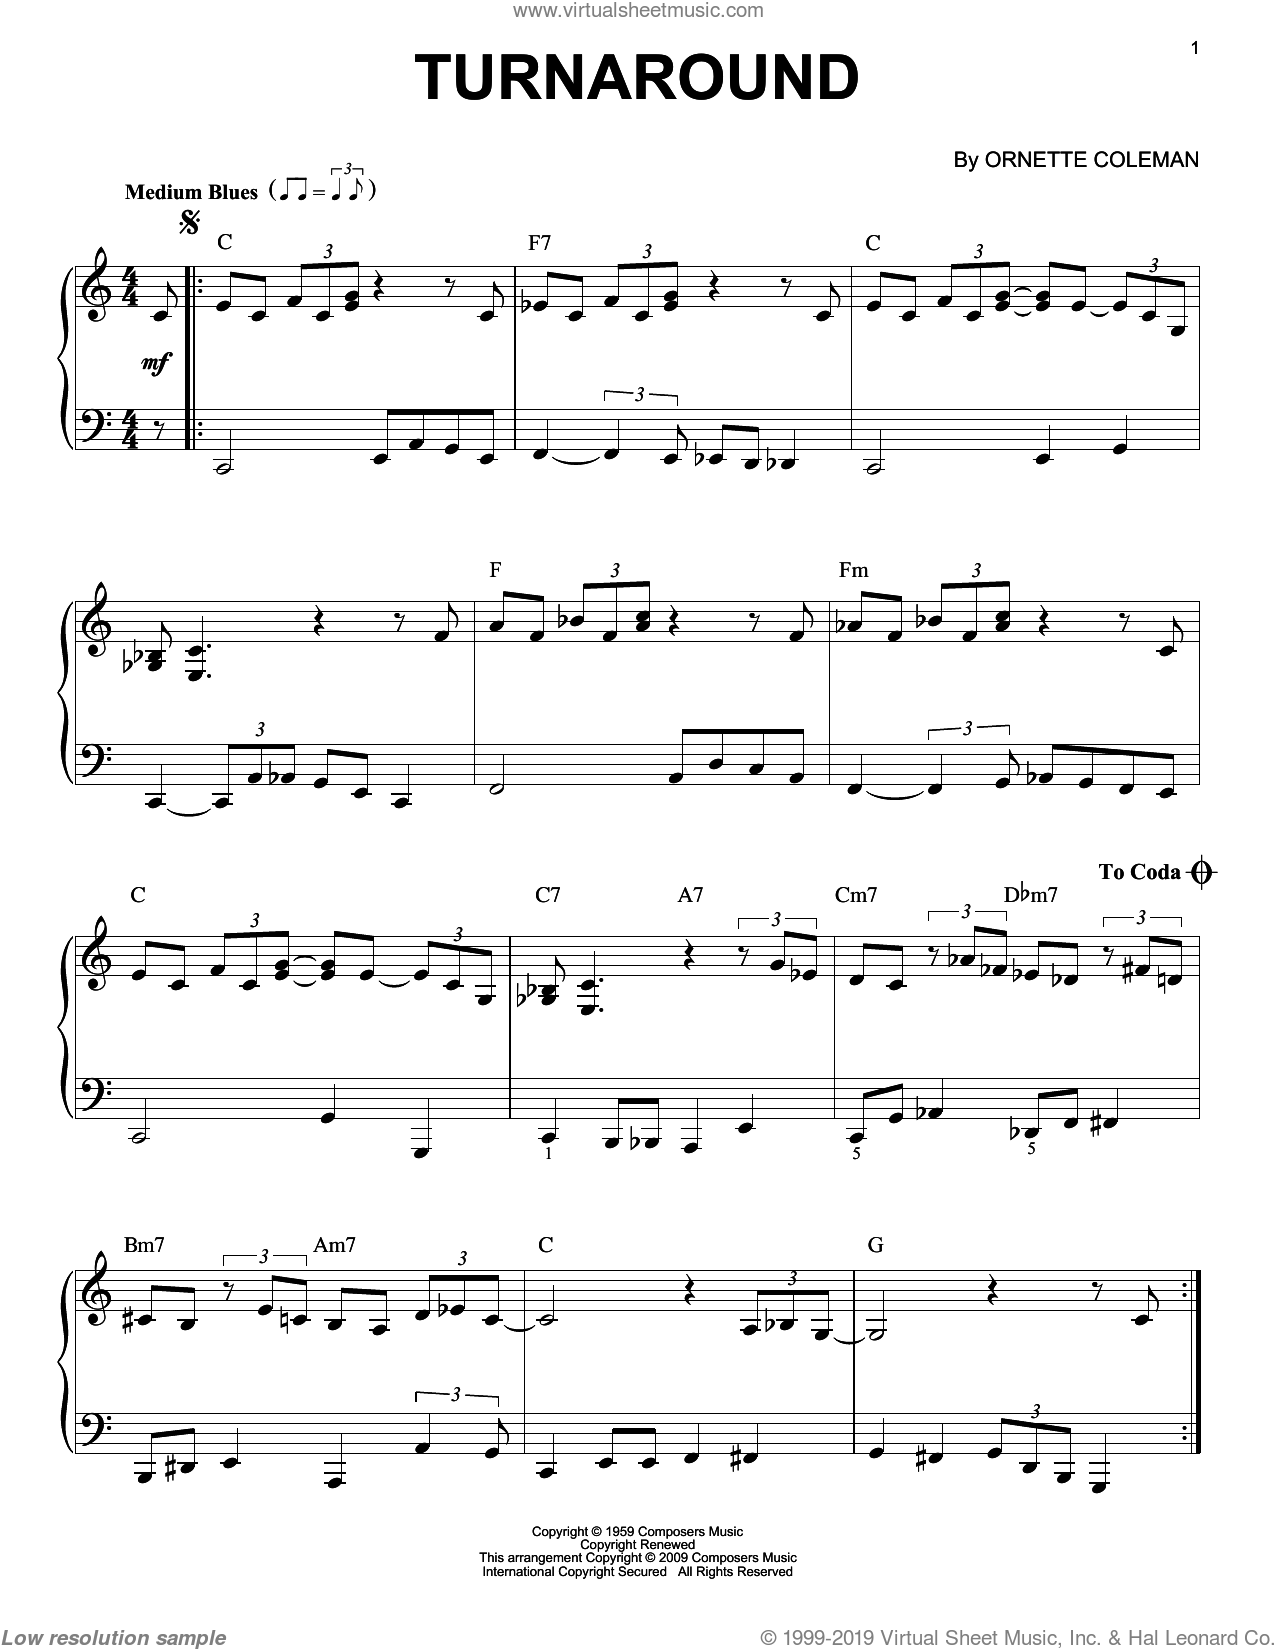 Turnaround sheet music for piano solo by Ornette Coleman